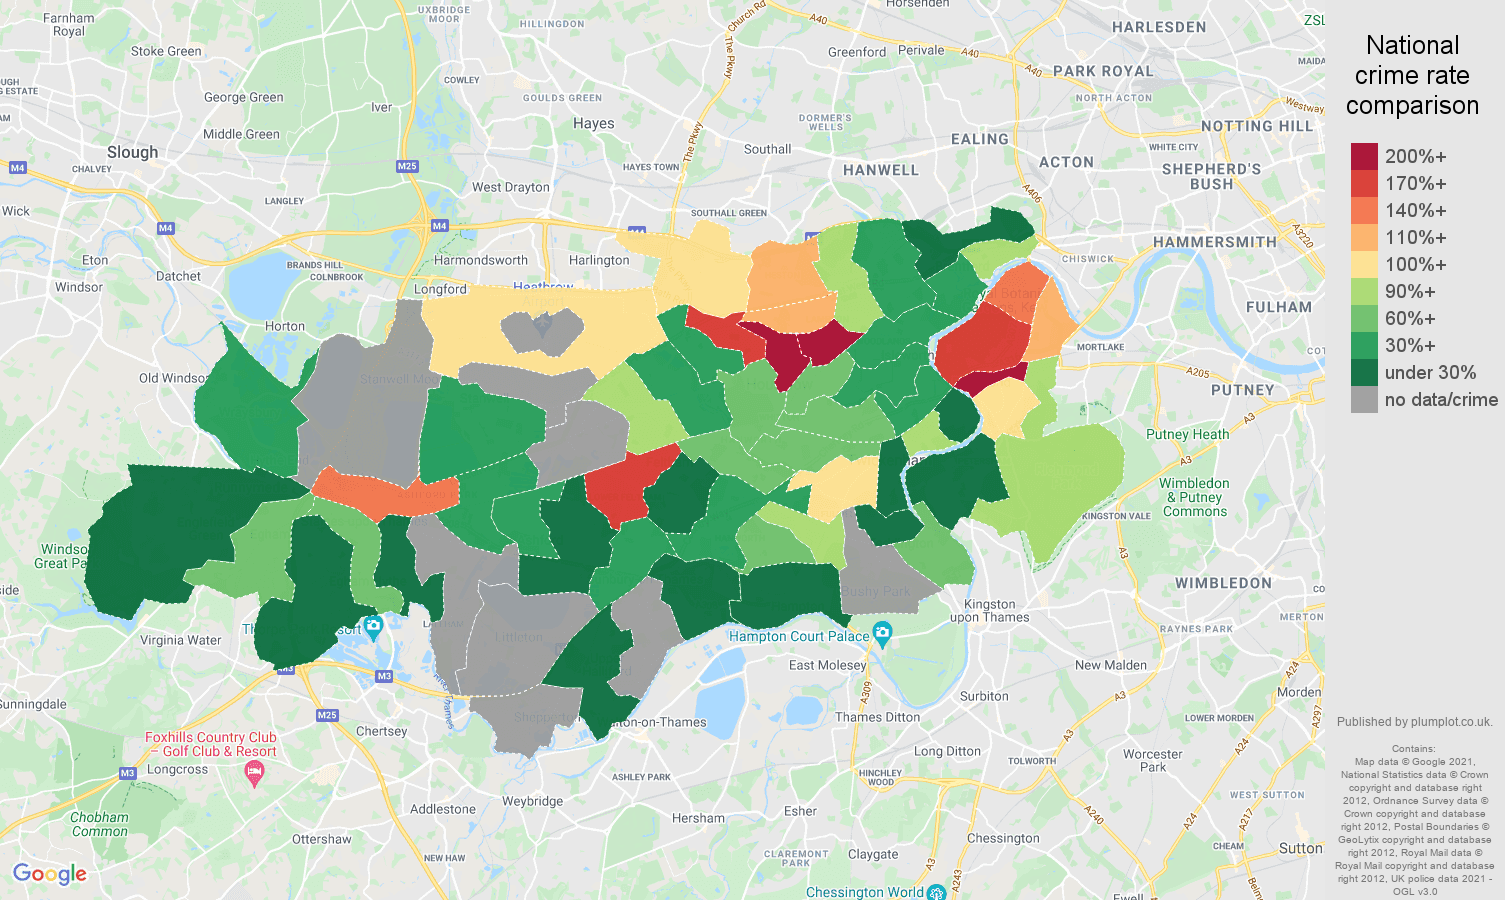 Twickenham theft from the person crime rate comparison map